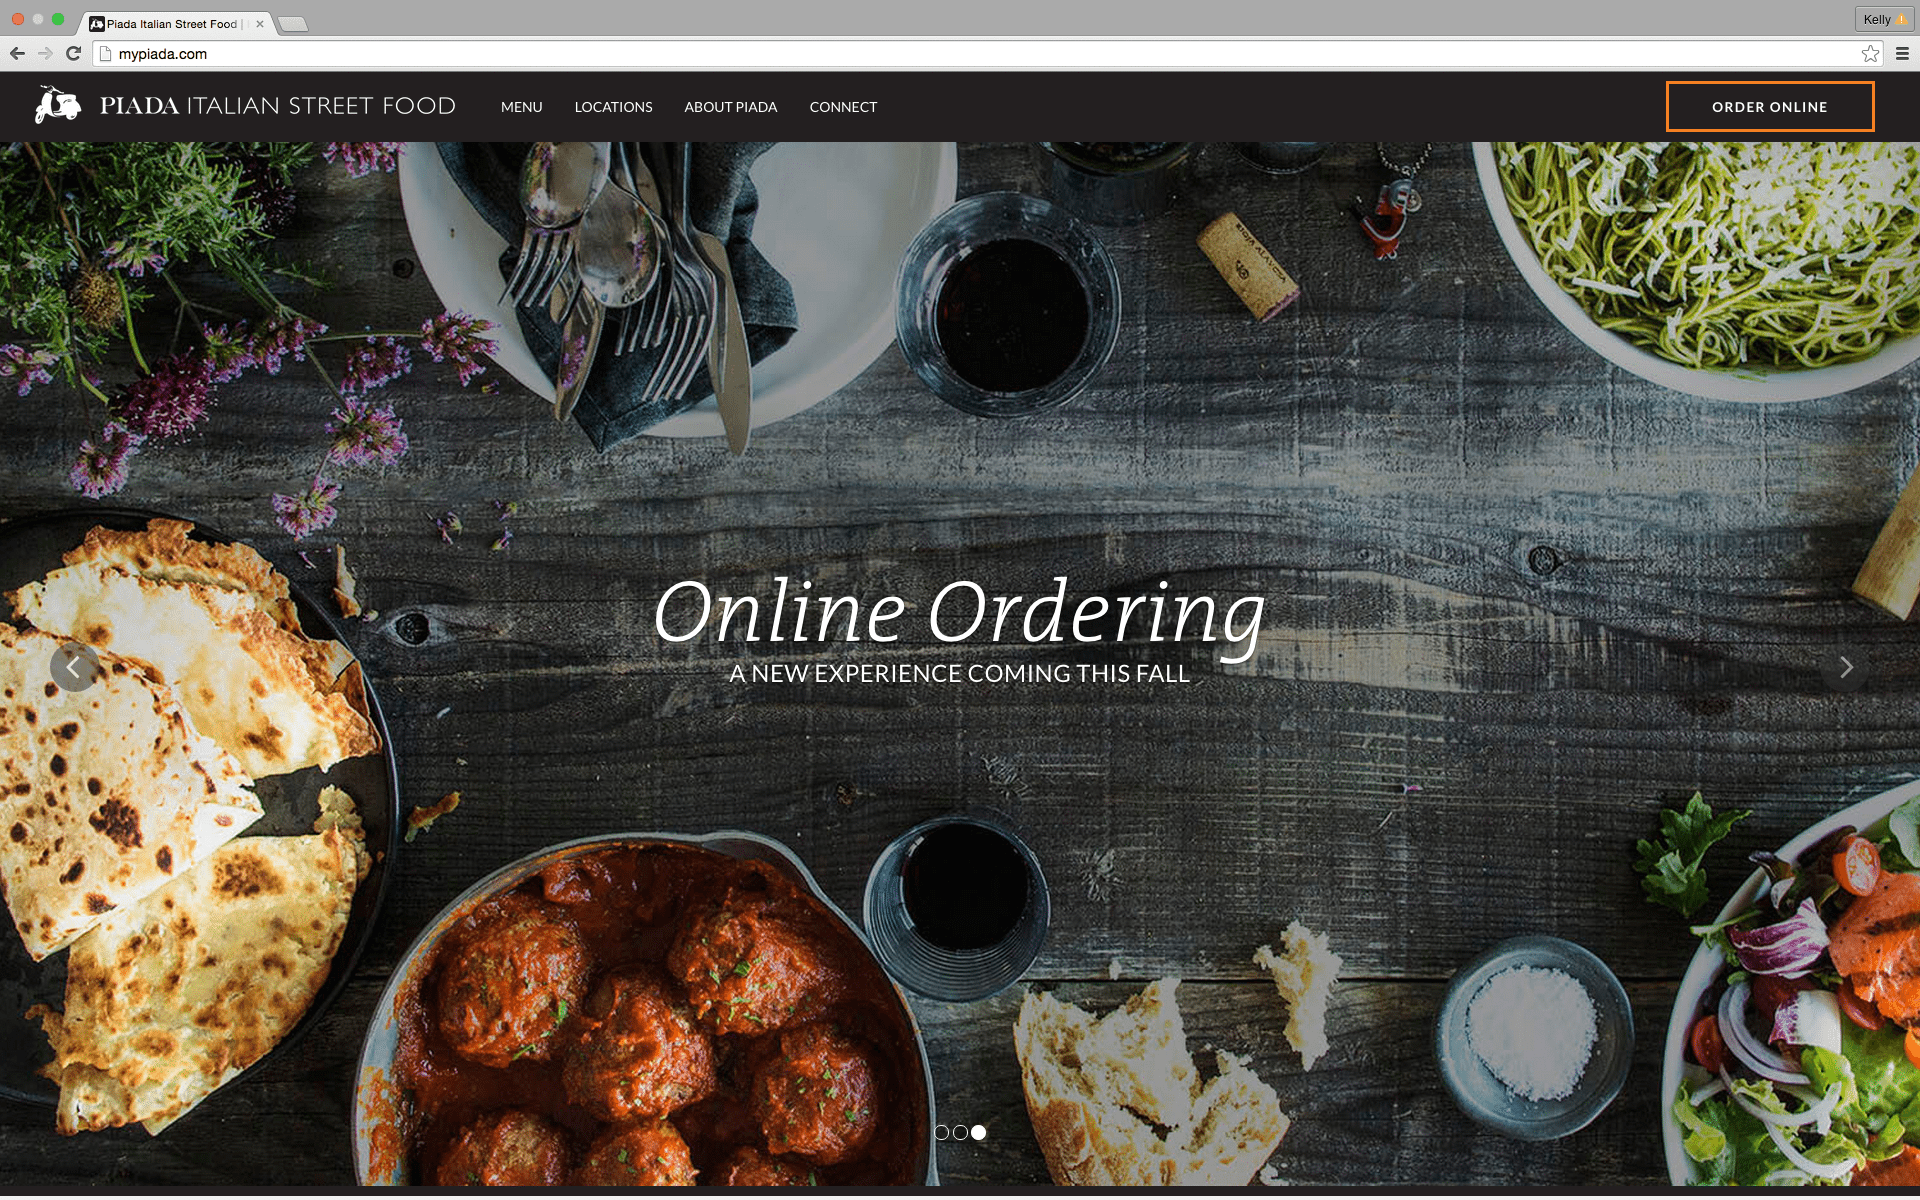 Piada has a new website – and it is awesome!